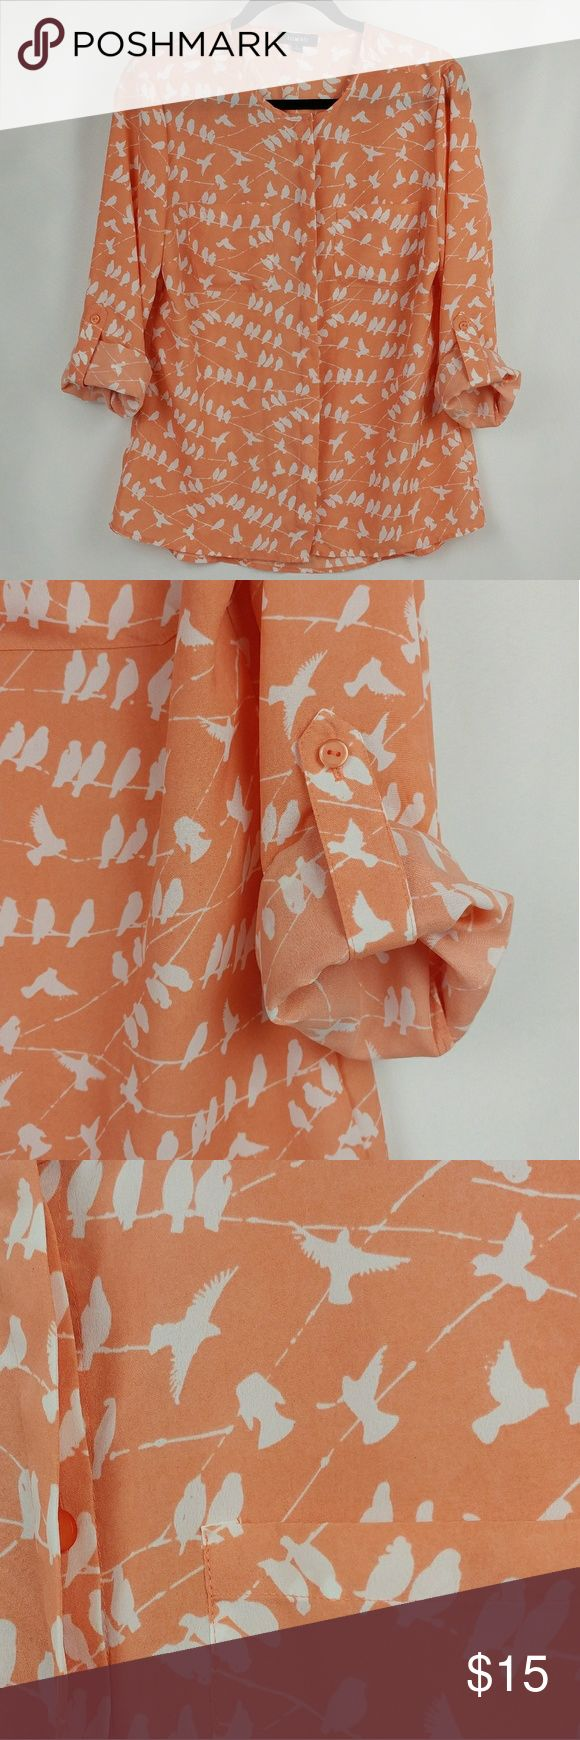 """Elementz Bird print coral/peach roll up sleeve top Elementz Bird print coral/peach color top with roll up sleeves and hidden buttons. 100% polyester. Armpit to armpit measuring laying flat 19.5"""" Length 25"""" in the front Length 27.7"""" in the back Waist 19"""" flat across In good gently used condition. Element Tops Button Down Shirts"""